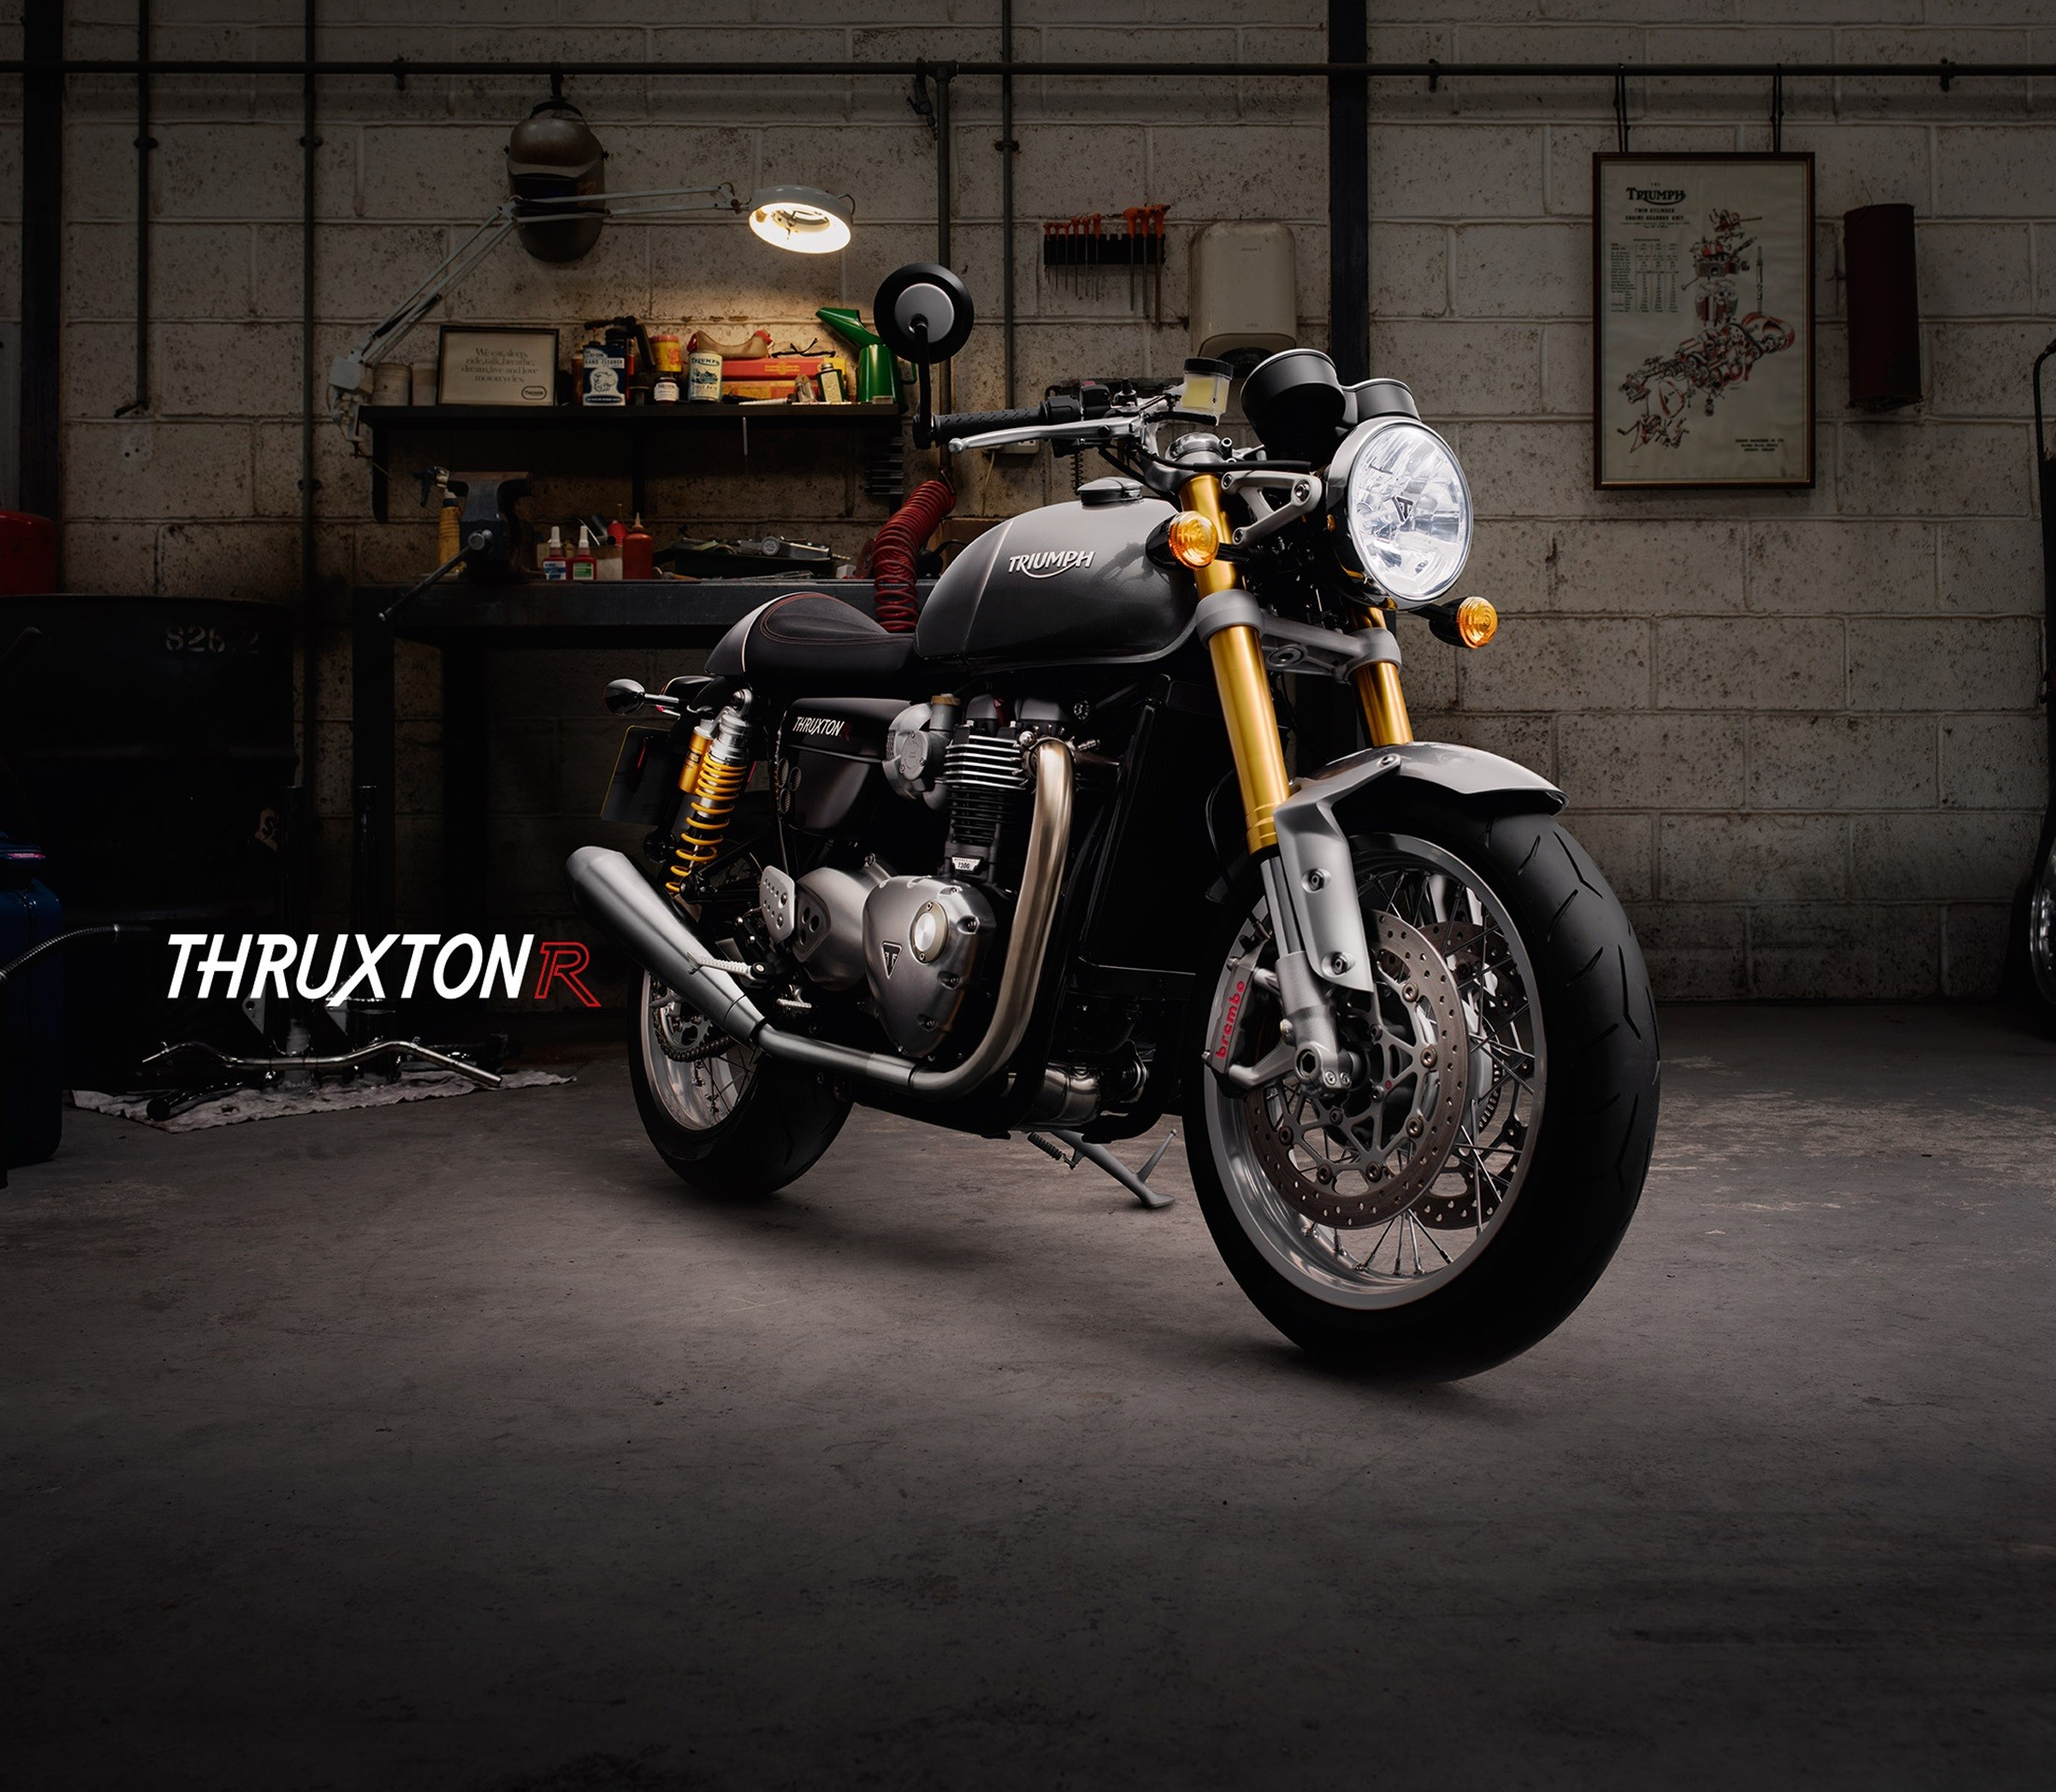 2016 triumph thruxton and thruxton r shown looking like real neo retro beauties gallery. Black Bedroom Furniture Sets. Home Design Ideas